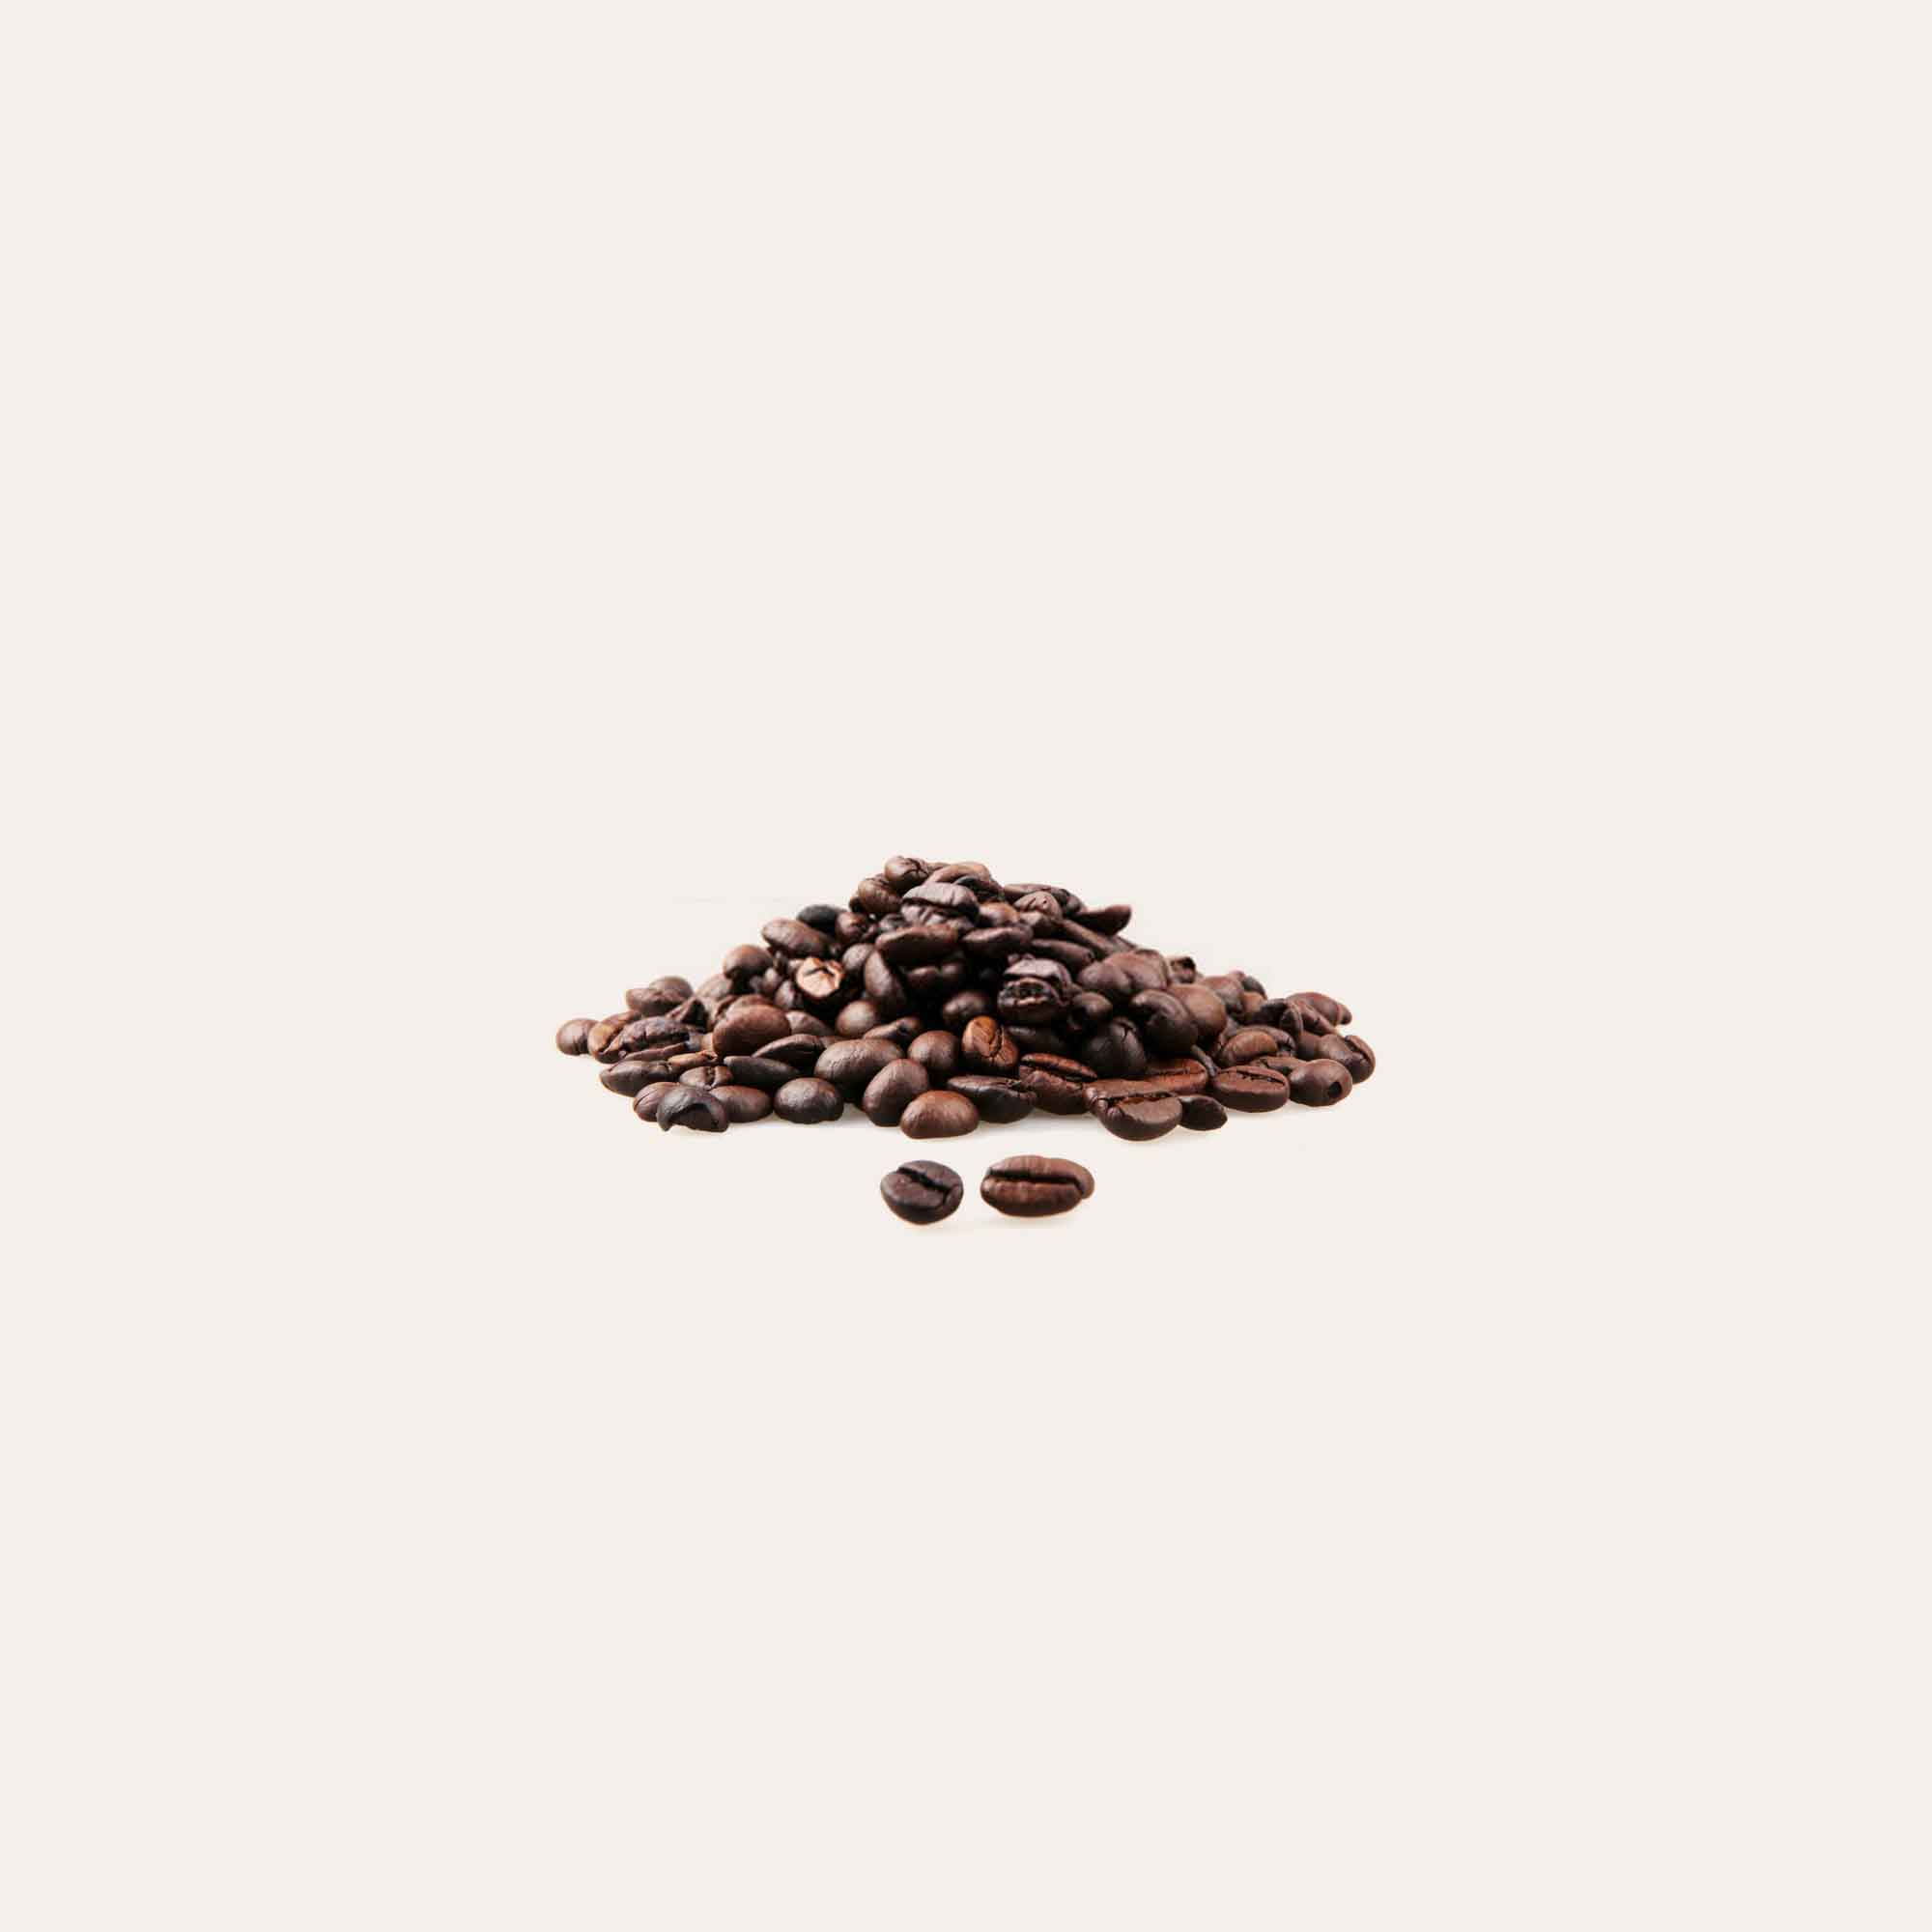 coffee beans on solid background